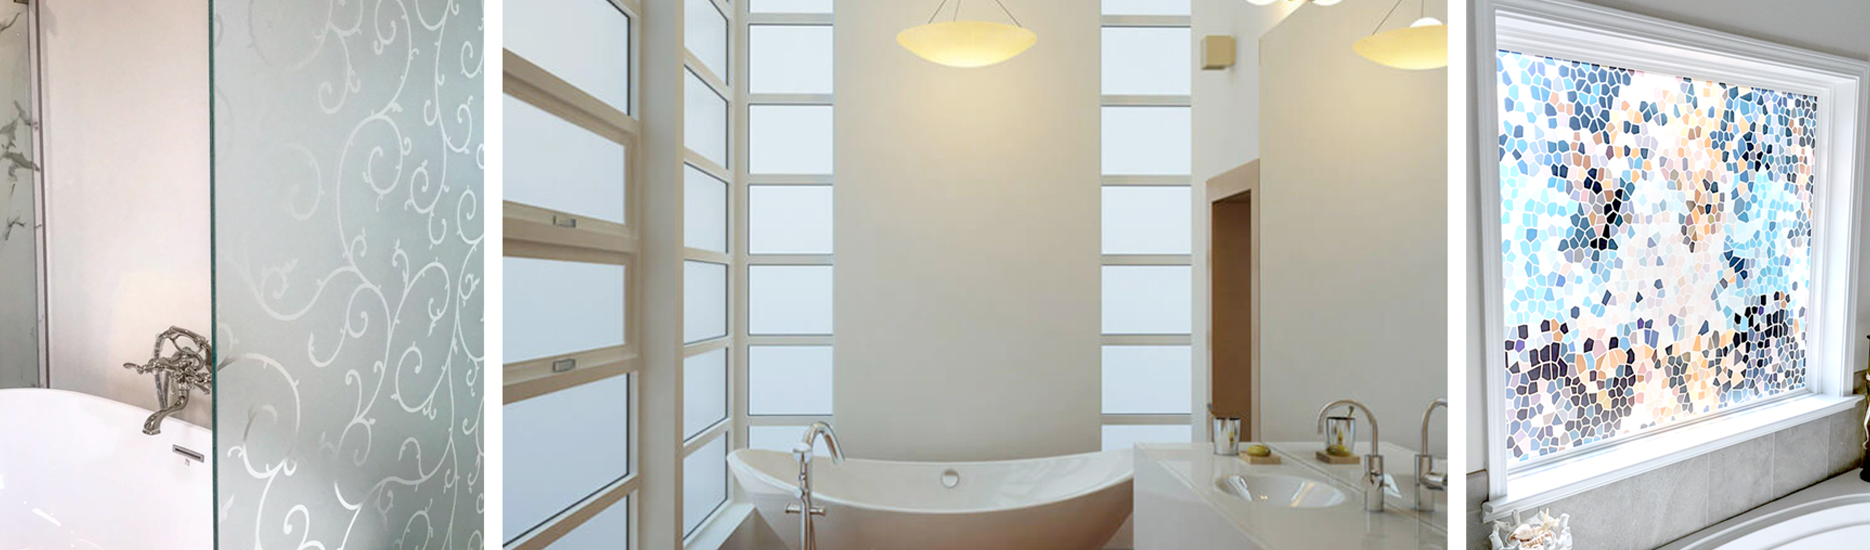 Bathroom Windows And Shower Doors